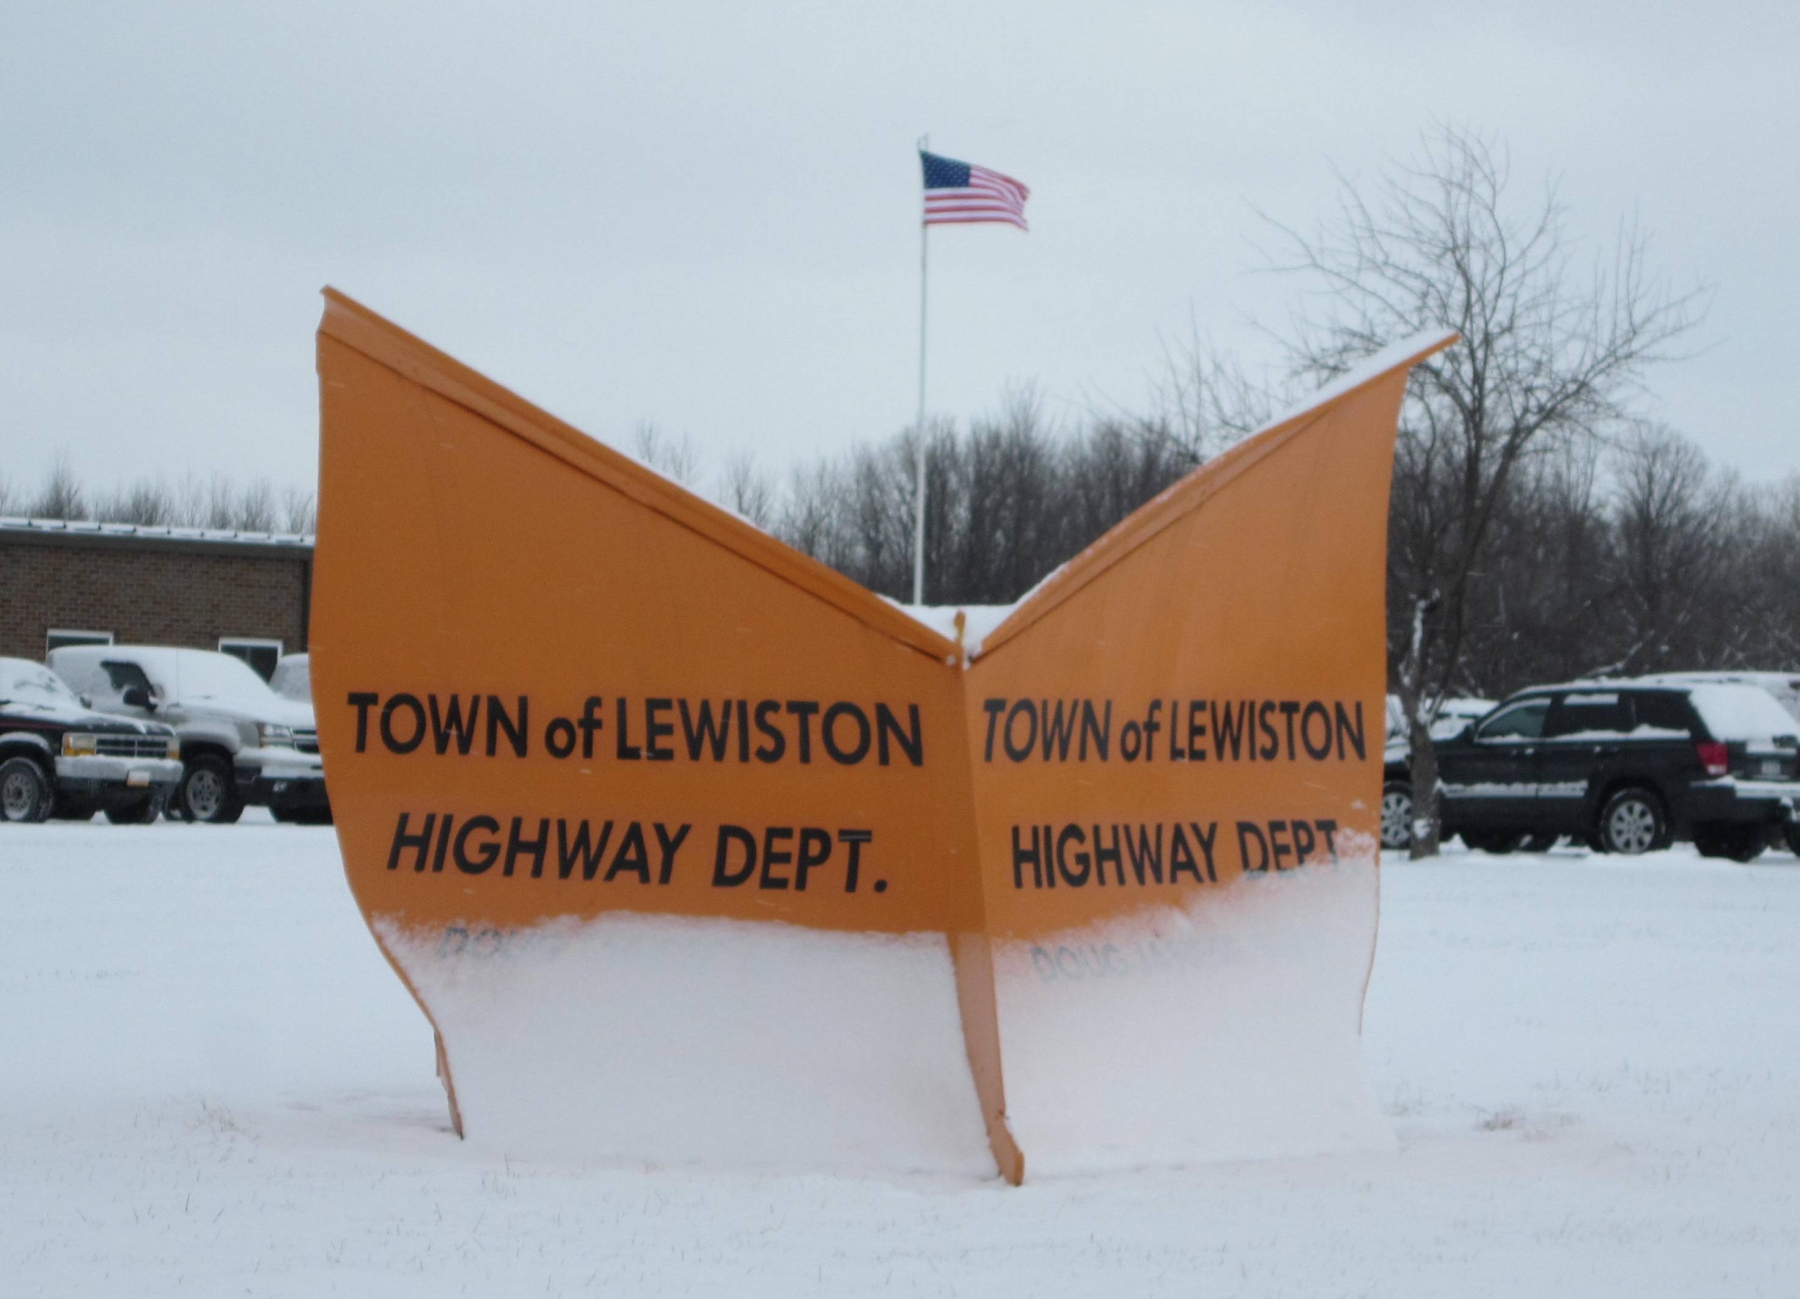 Town Of Lewiston Highway Drainage Department 2 week extended forecast in lewiston, idaho, usa. town of lewiston